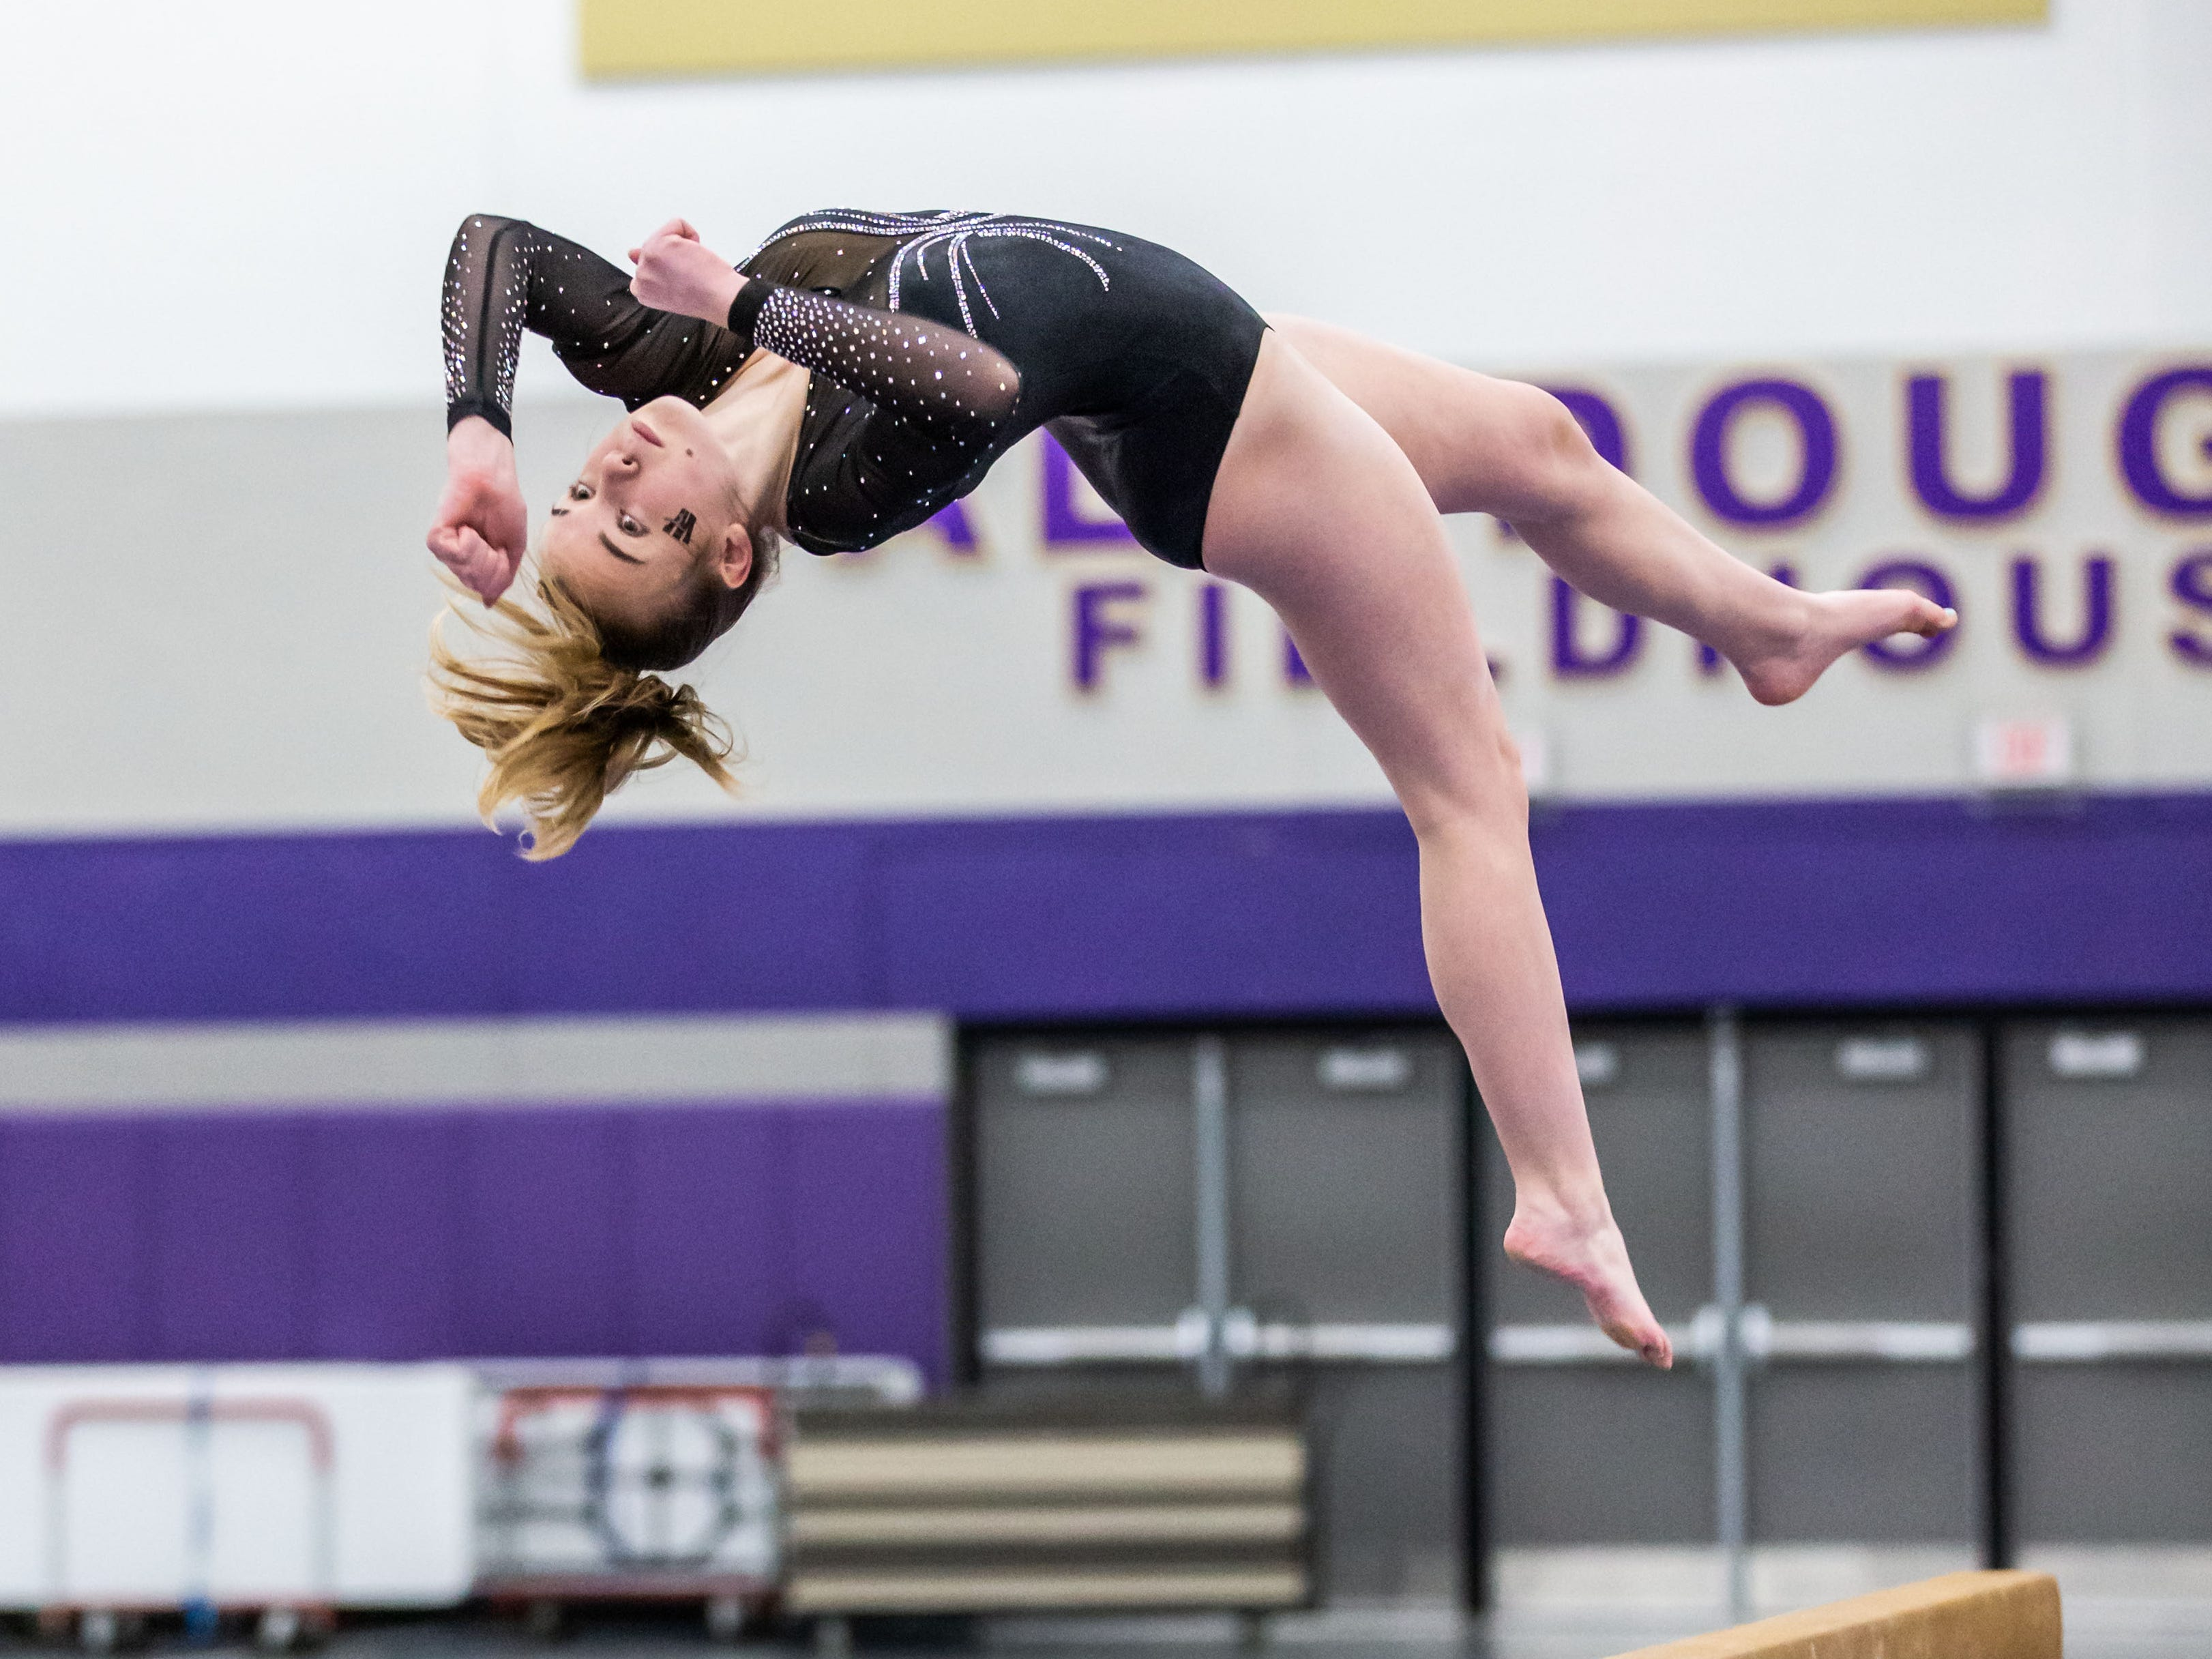 Waukesha co-op gymnast Caroline Wayer dismounts from the beam during the Division 1 sectional at Oconomowoc on Friday, Feb. 22, 2019. Wayer placed second on the beam.